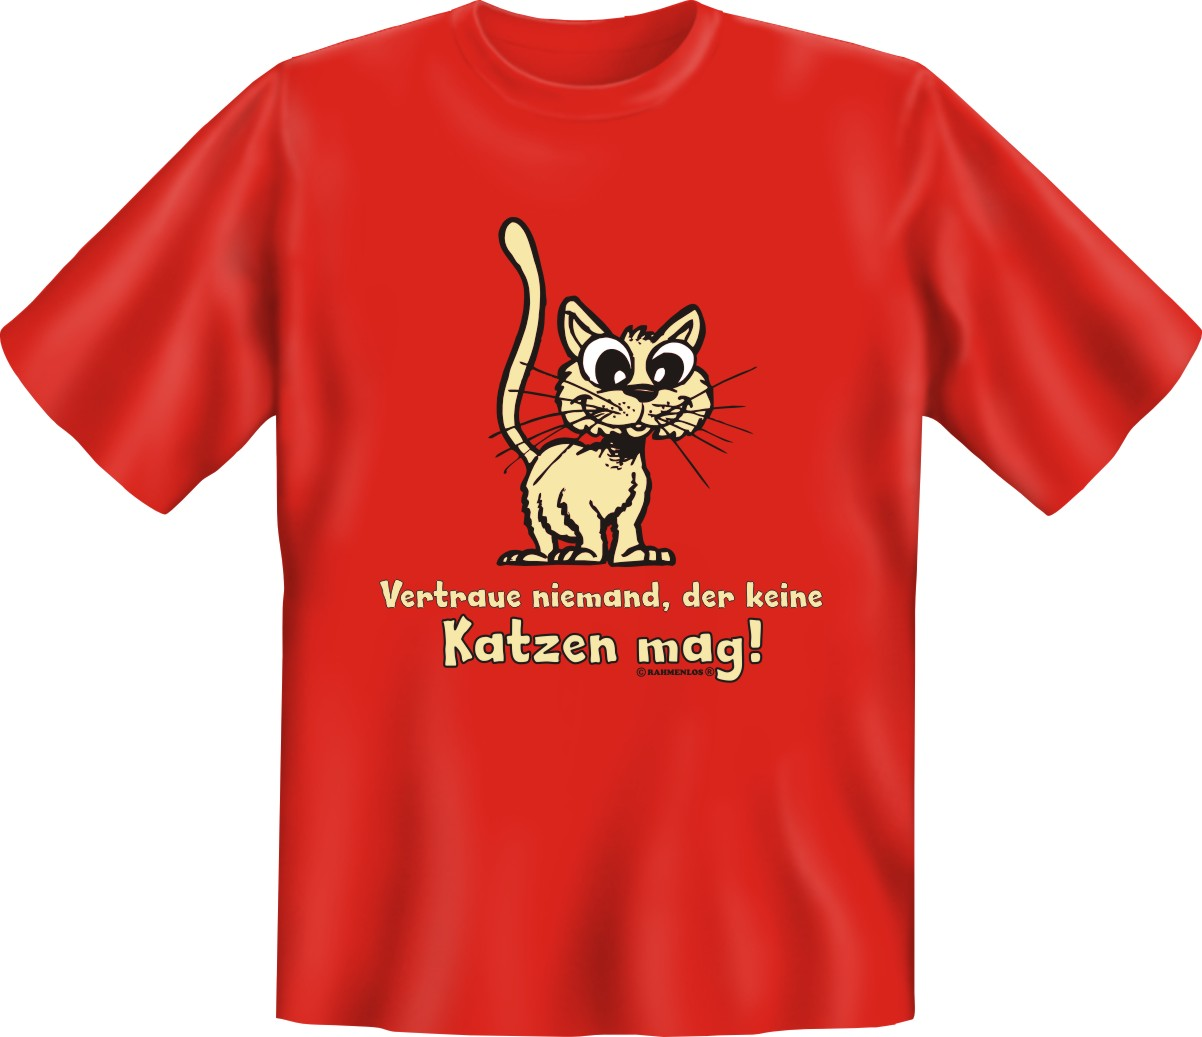 coole witzige lustige spr che fun t shirt zum thema hunde katzen haustiere ebay. Black Bedroom Furniture Sets. Home Design Ideas